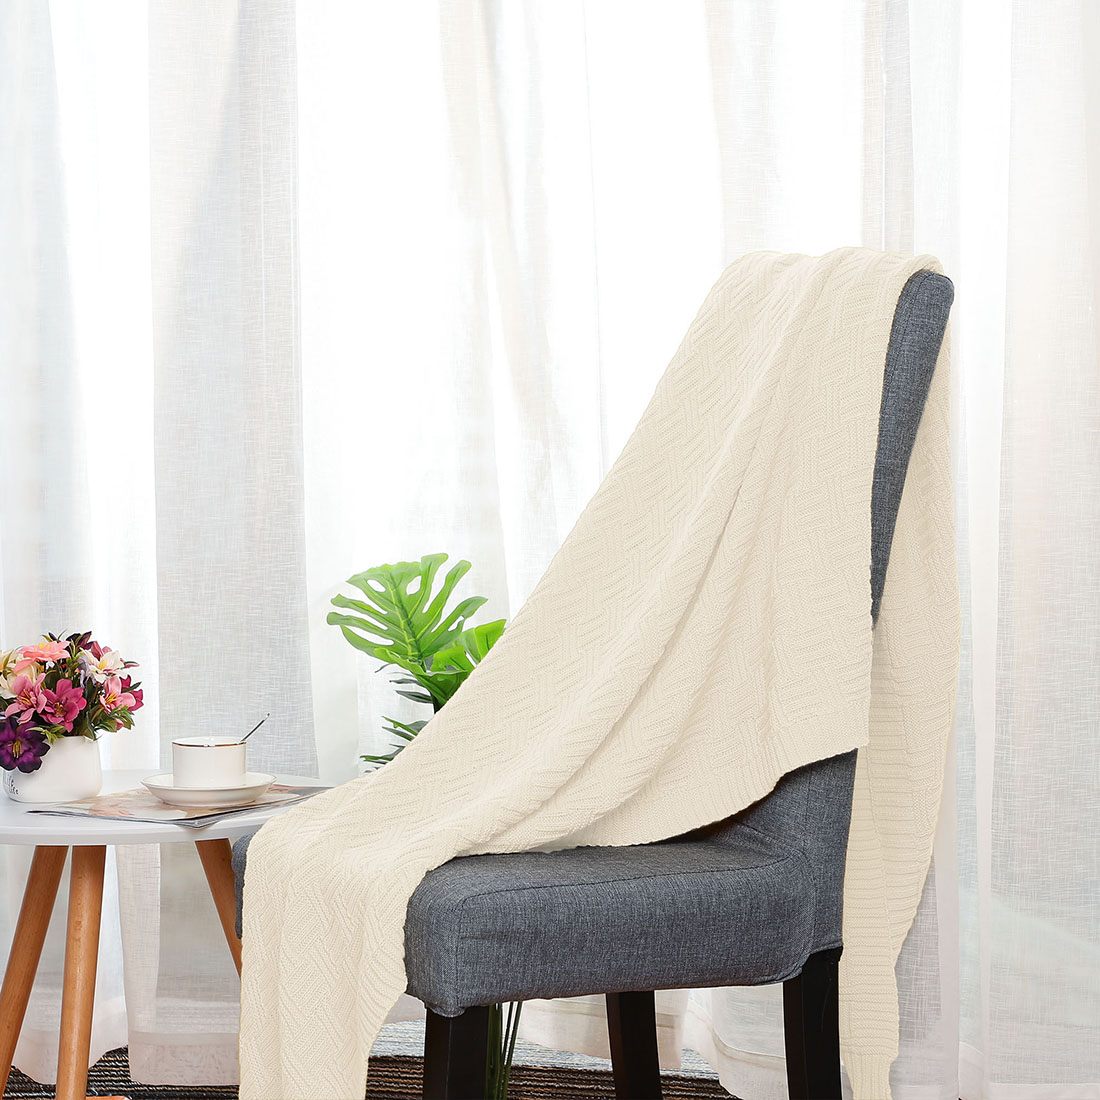 Lightweight-Warm-Soft-100-Cotton-Cable-Knit-Throw-Blanket-Sofa-Bed-Travel-Throw thumbnail 13